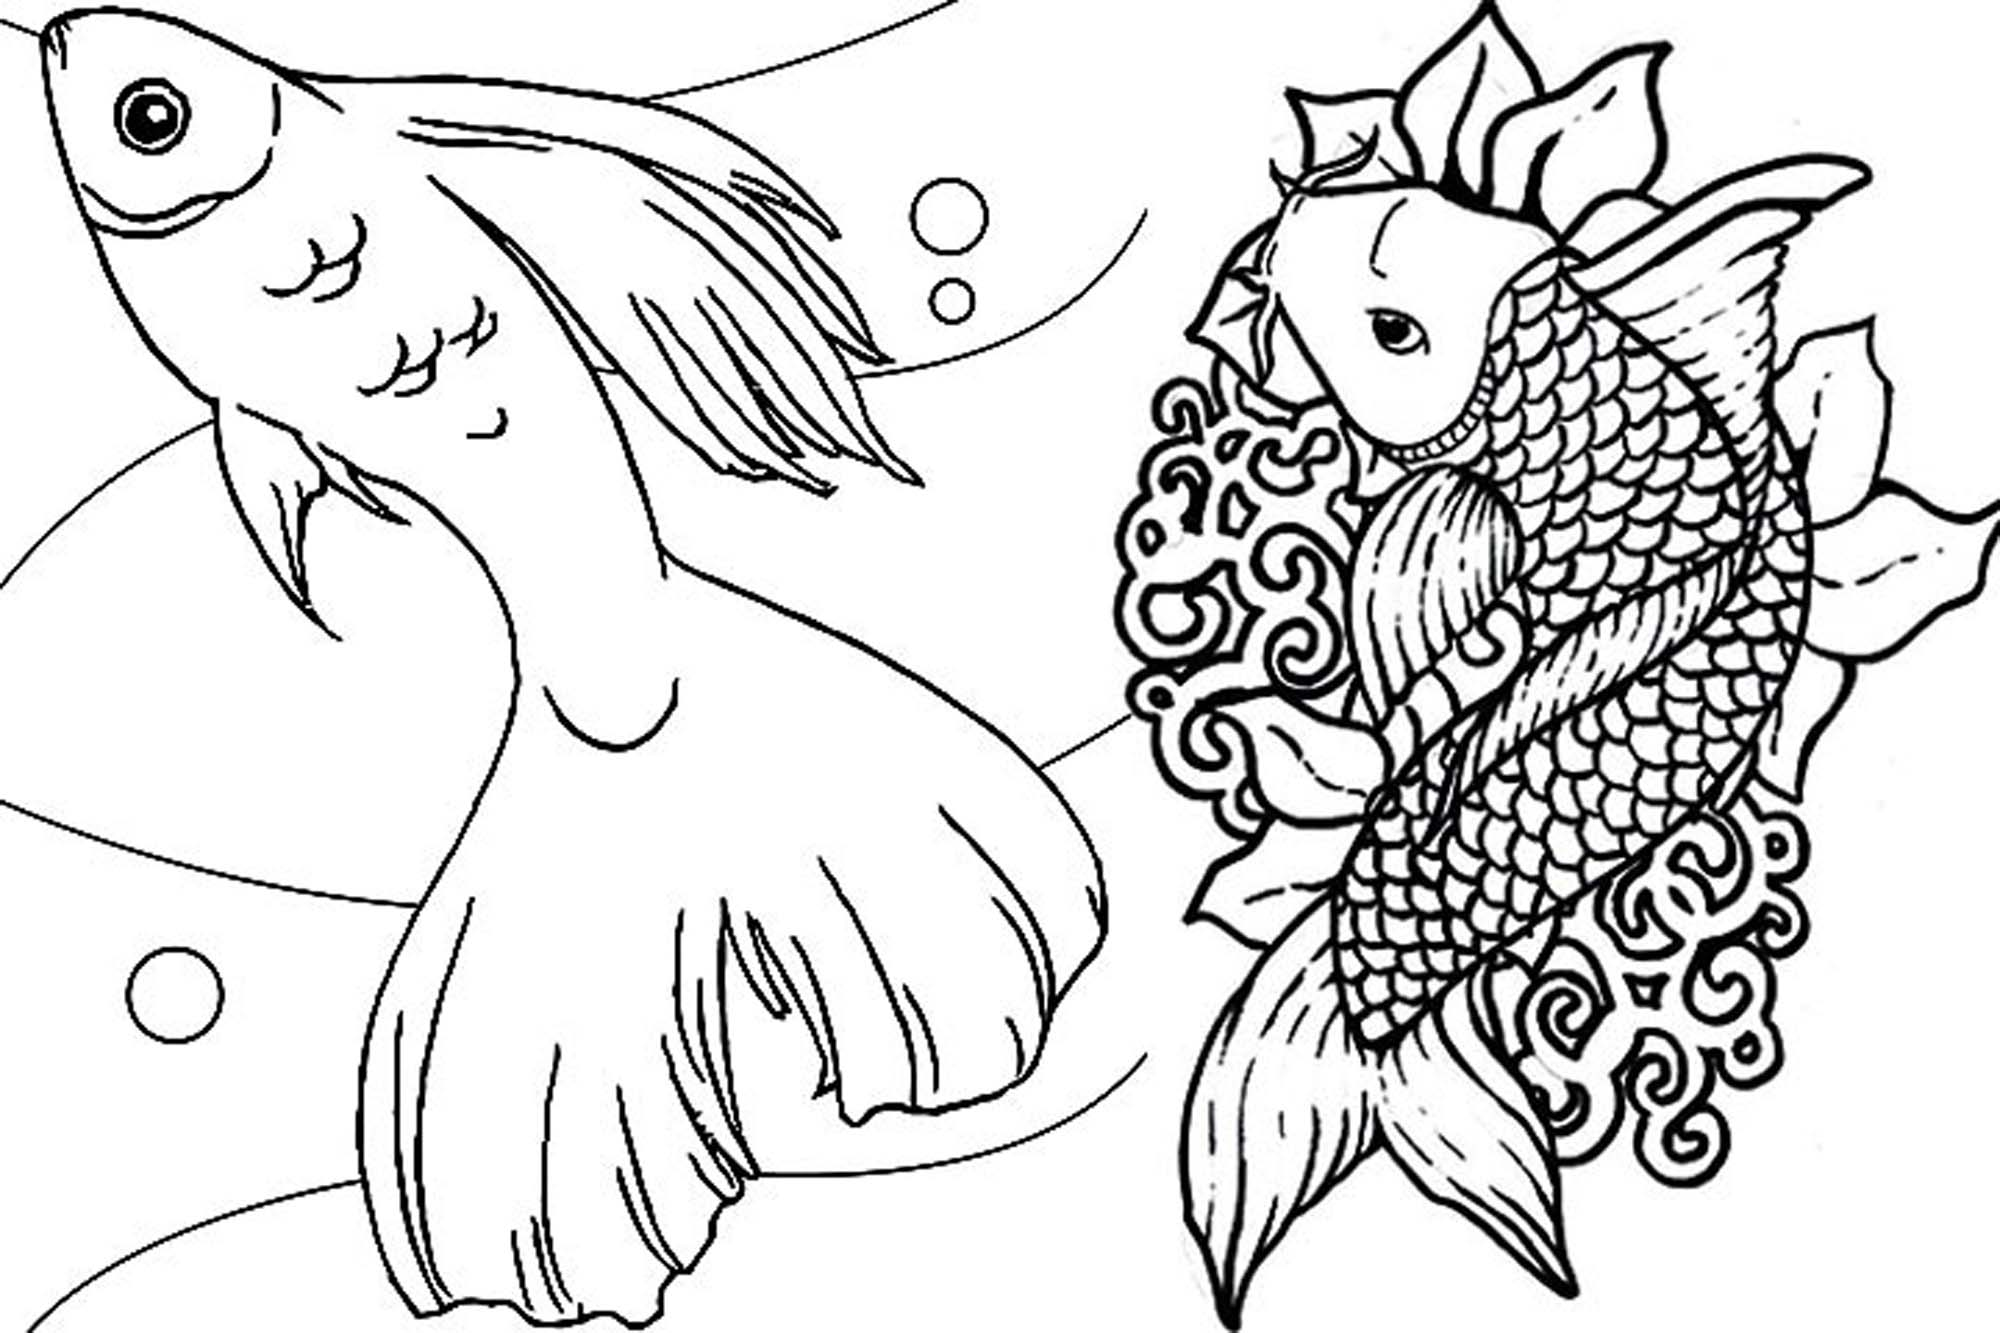 Fish Coloring Pages For Adults Bestappsforkids